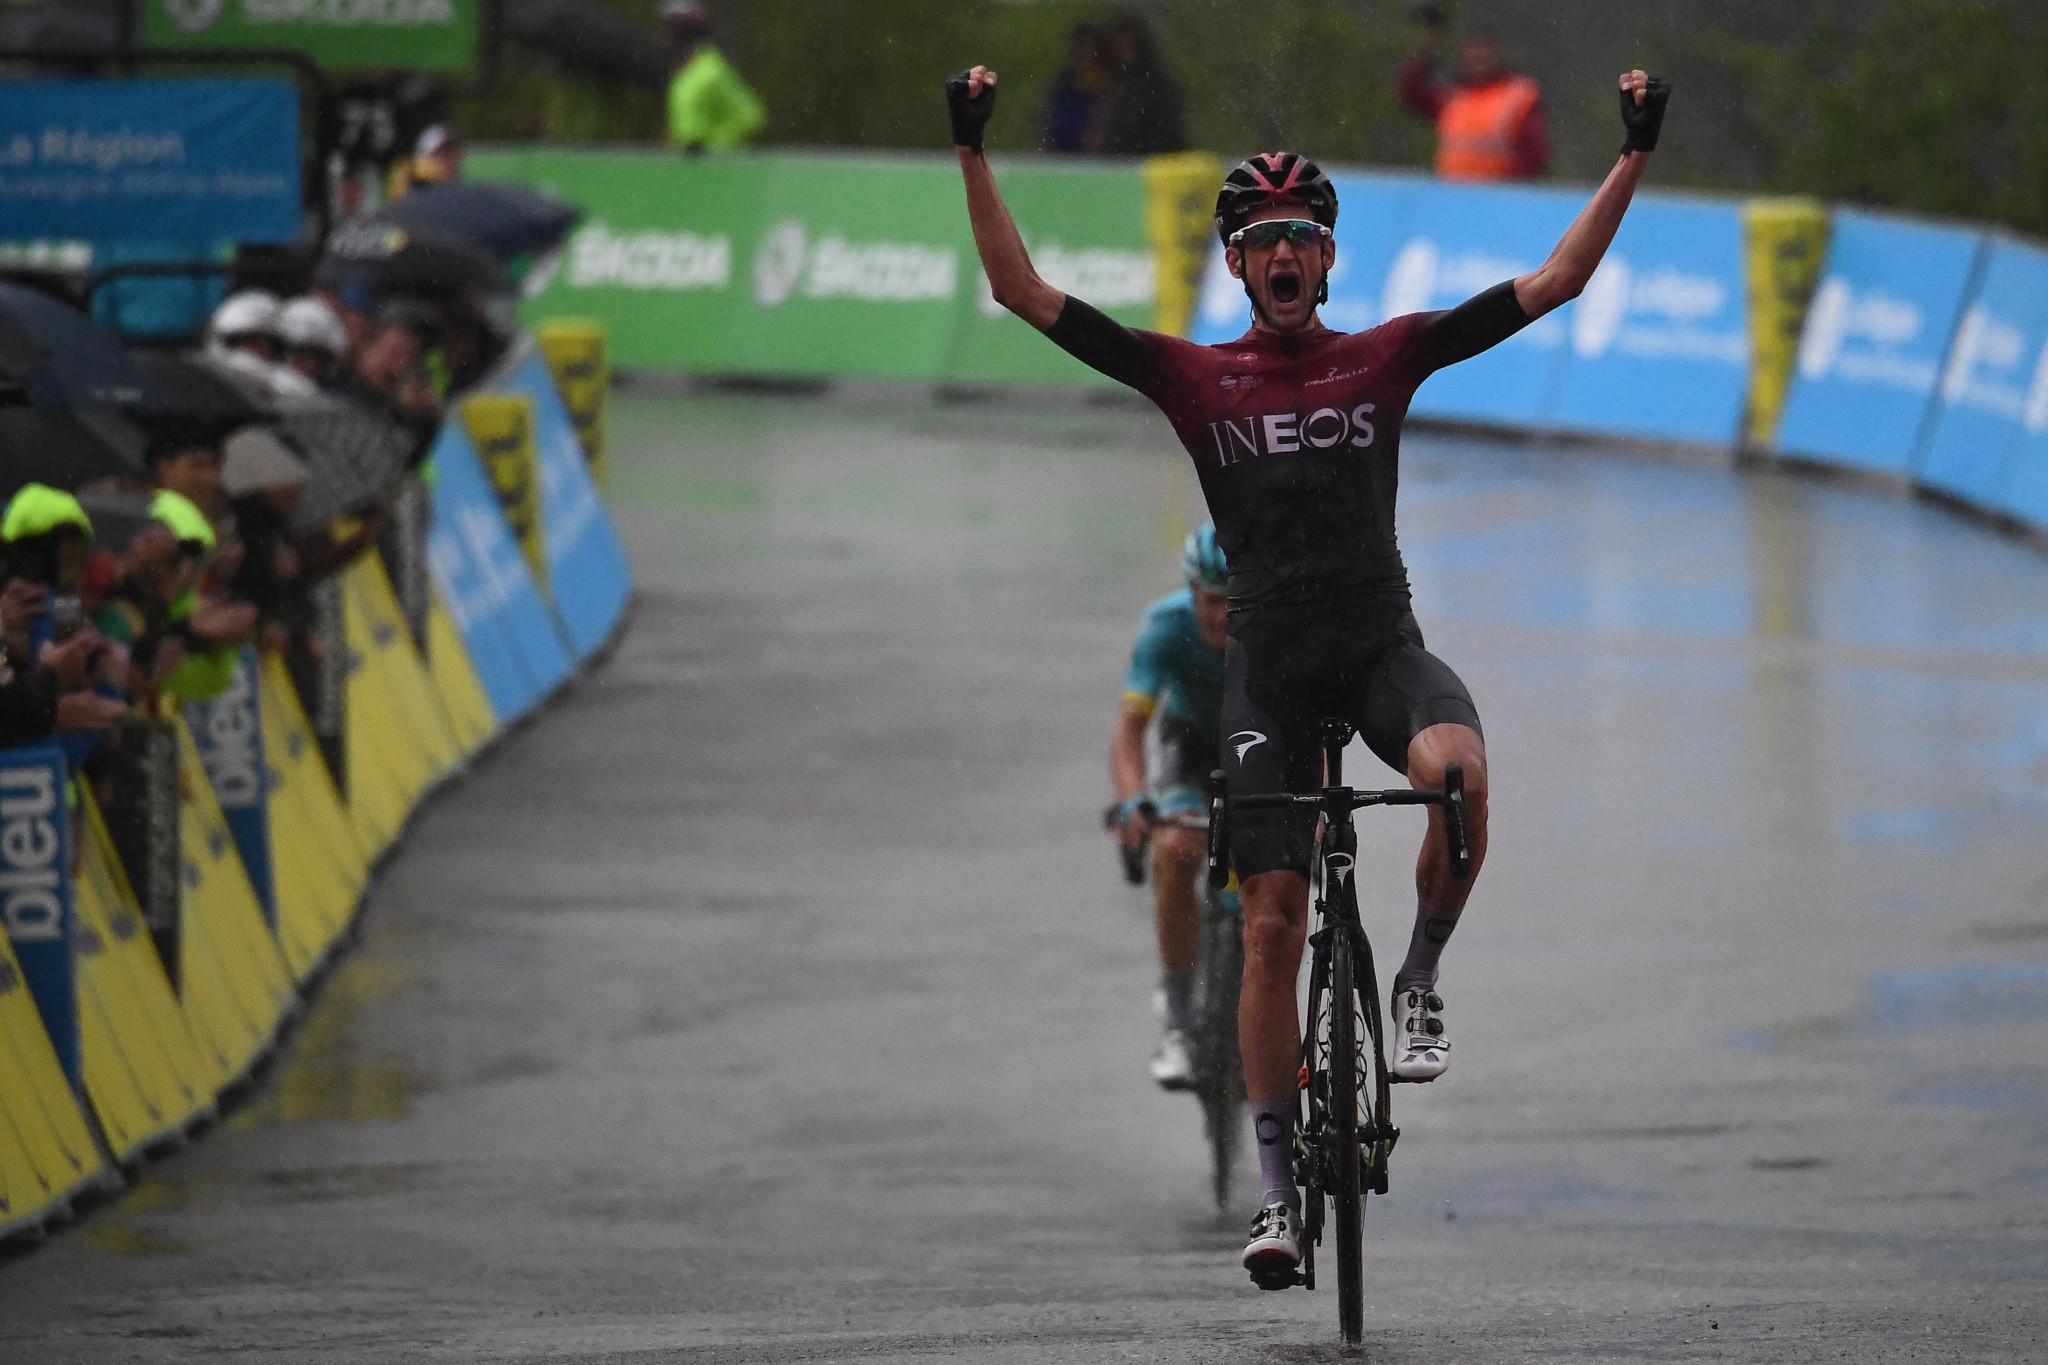 Poels dedicates stage win to injured Froome as Fuglsang takes Critérium du Dauphiné race lead